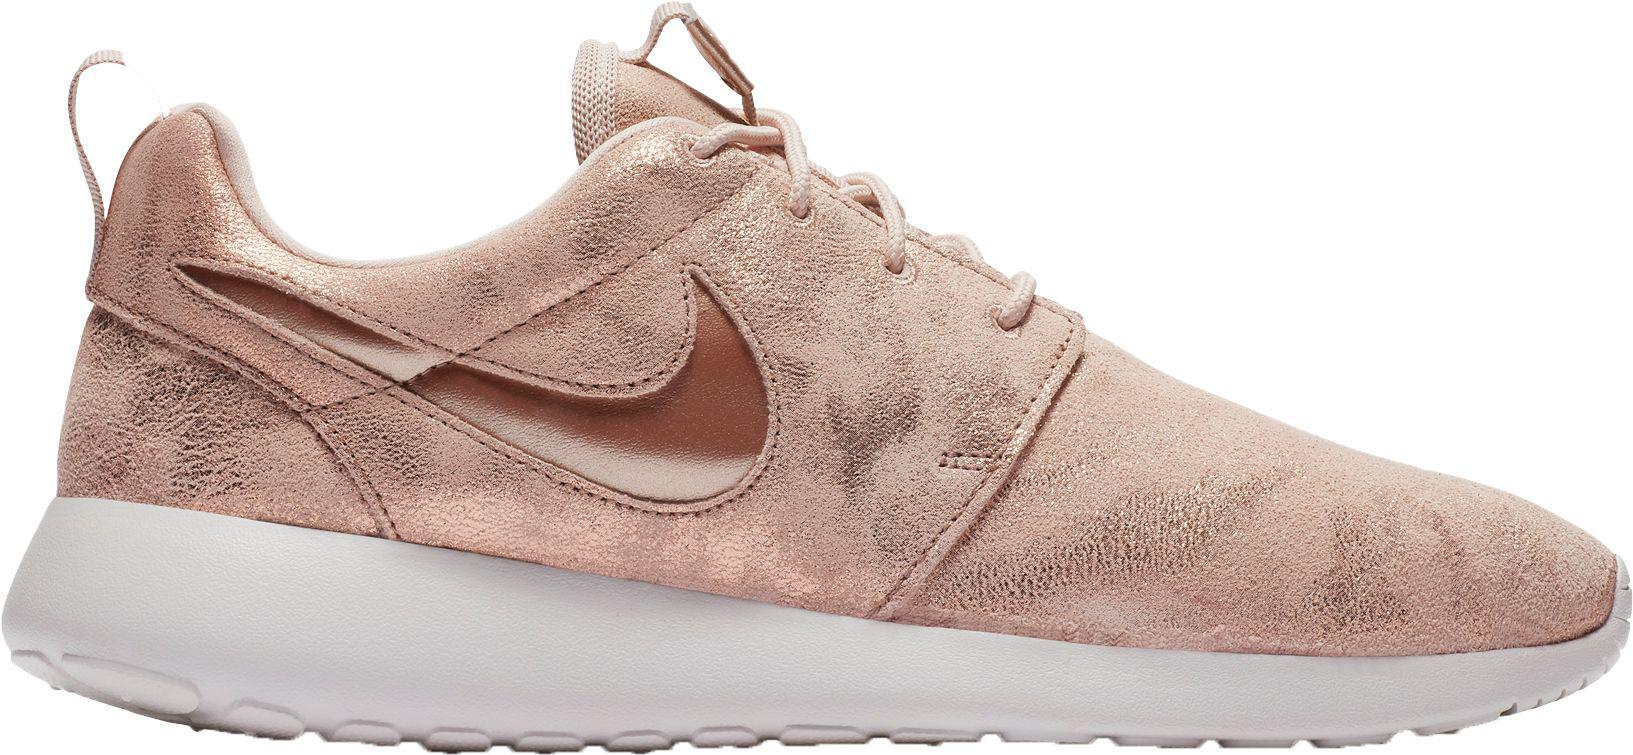 timeless design dfcd6 6d5a2 View fullscreen · Nike - Multicolor Roshe One Premium Shoes - Lyst